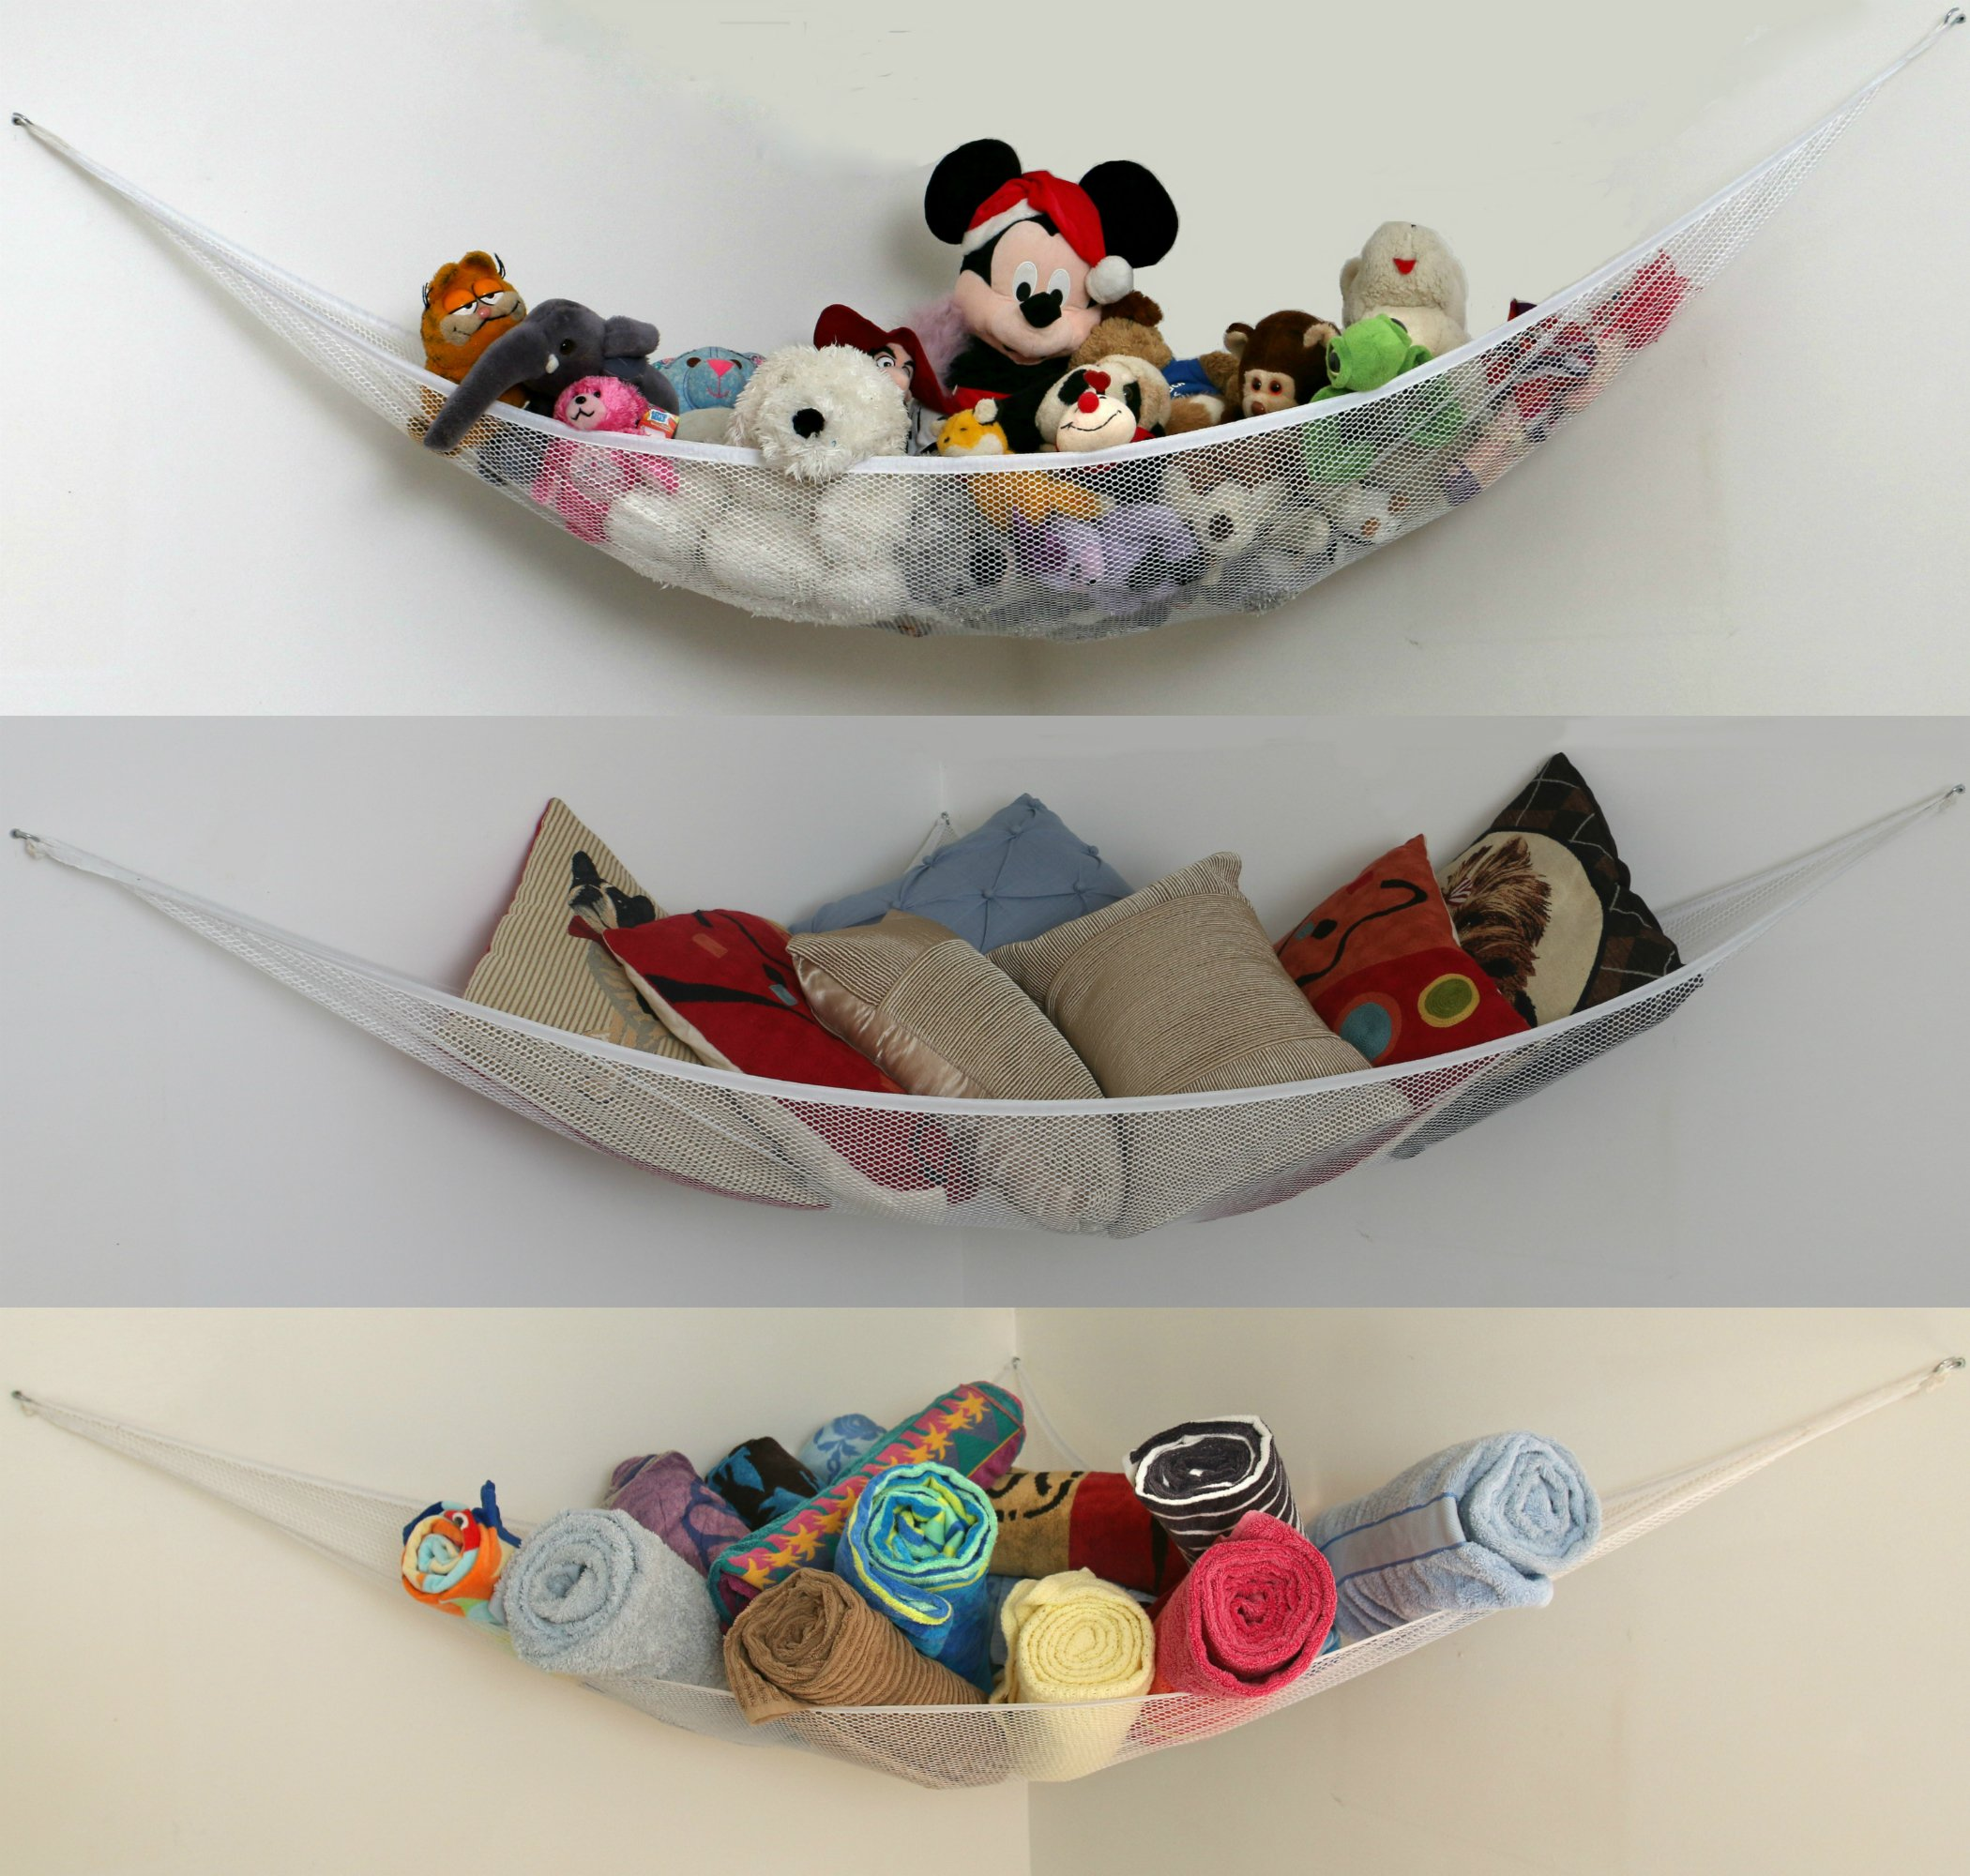 XL Toy Storage Hammock [Also in L Size] for Kids Stuffed Animals, Pool Toys, Sports Gear, Towels, Bedding. Corner Net and Bin Organizer. Top Quality, Suits Any Decor, Easy Install, Machine Washable by Corner Tidy